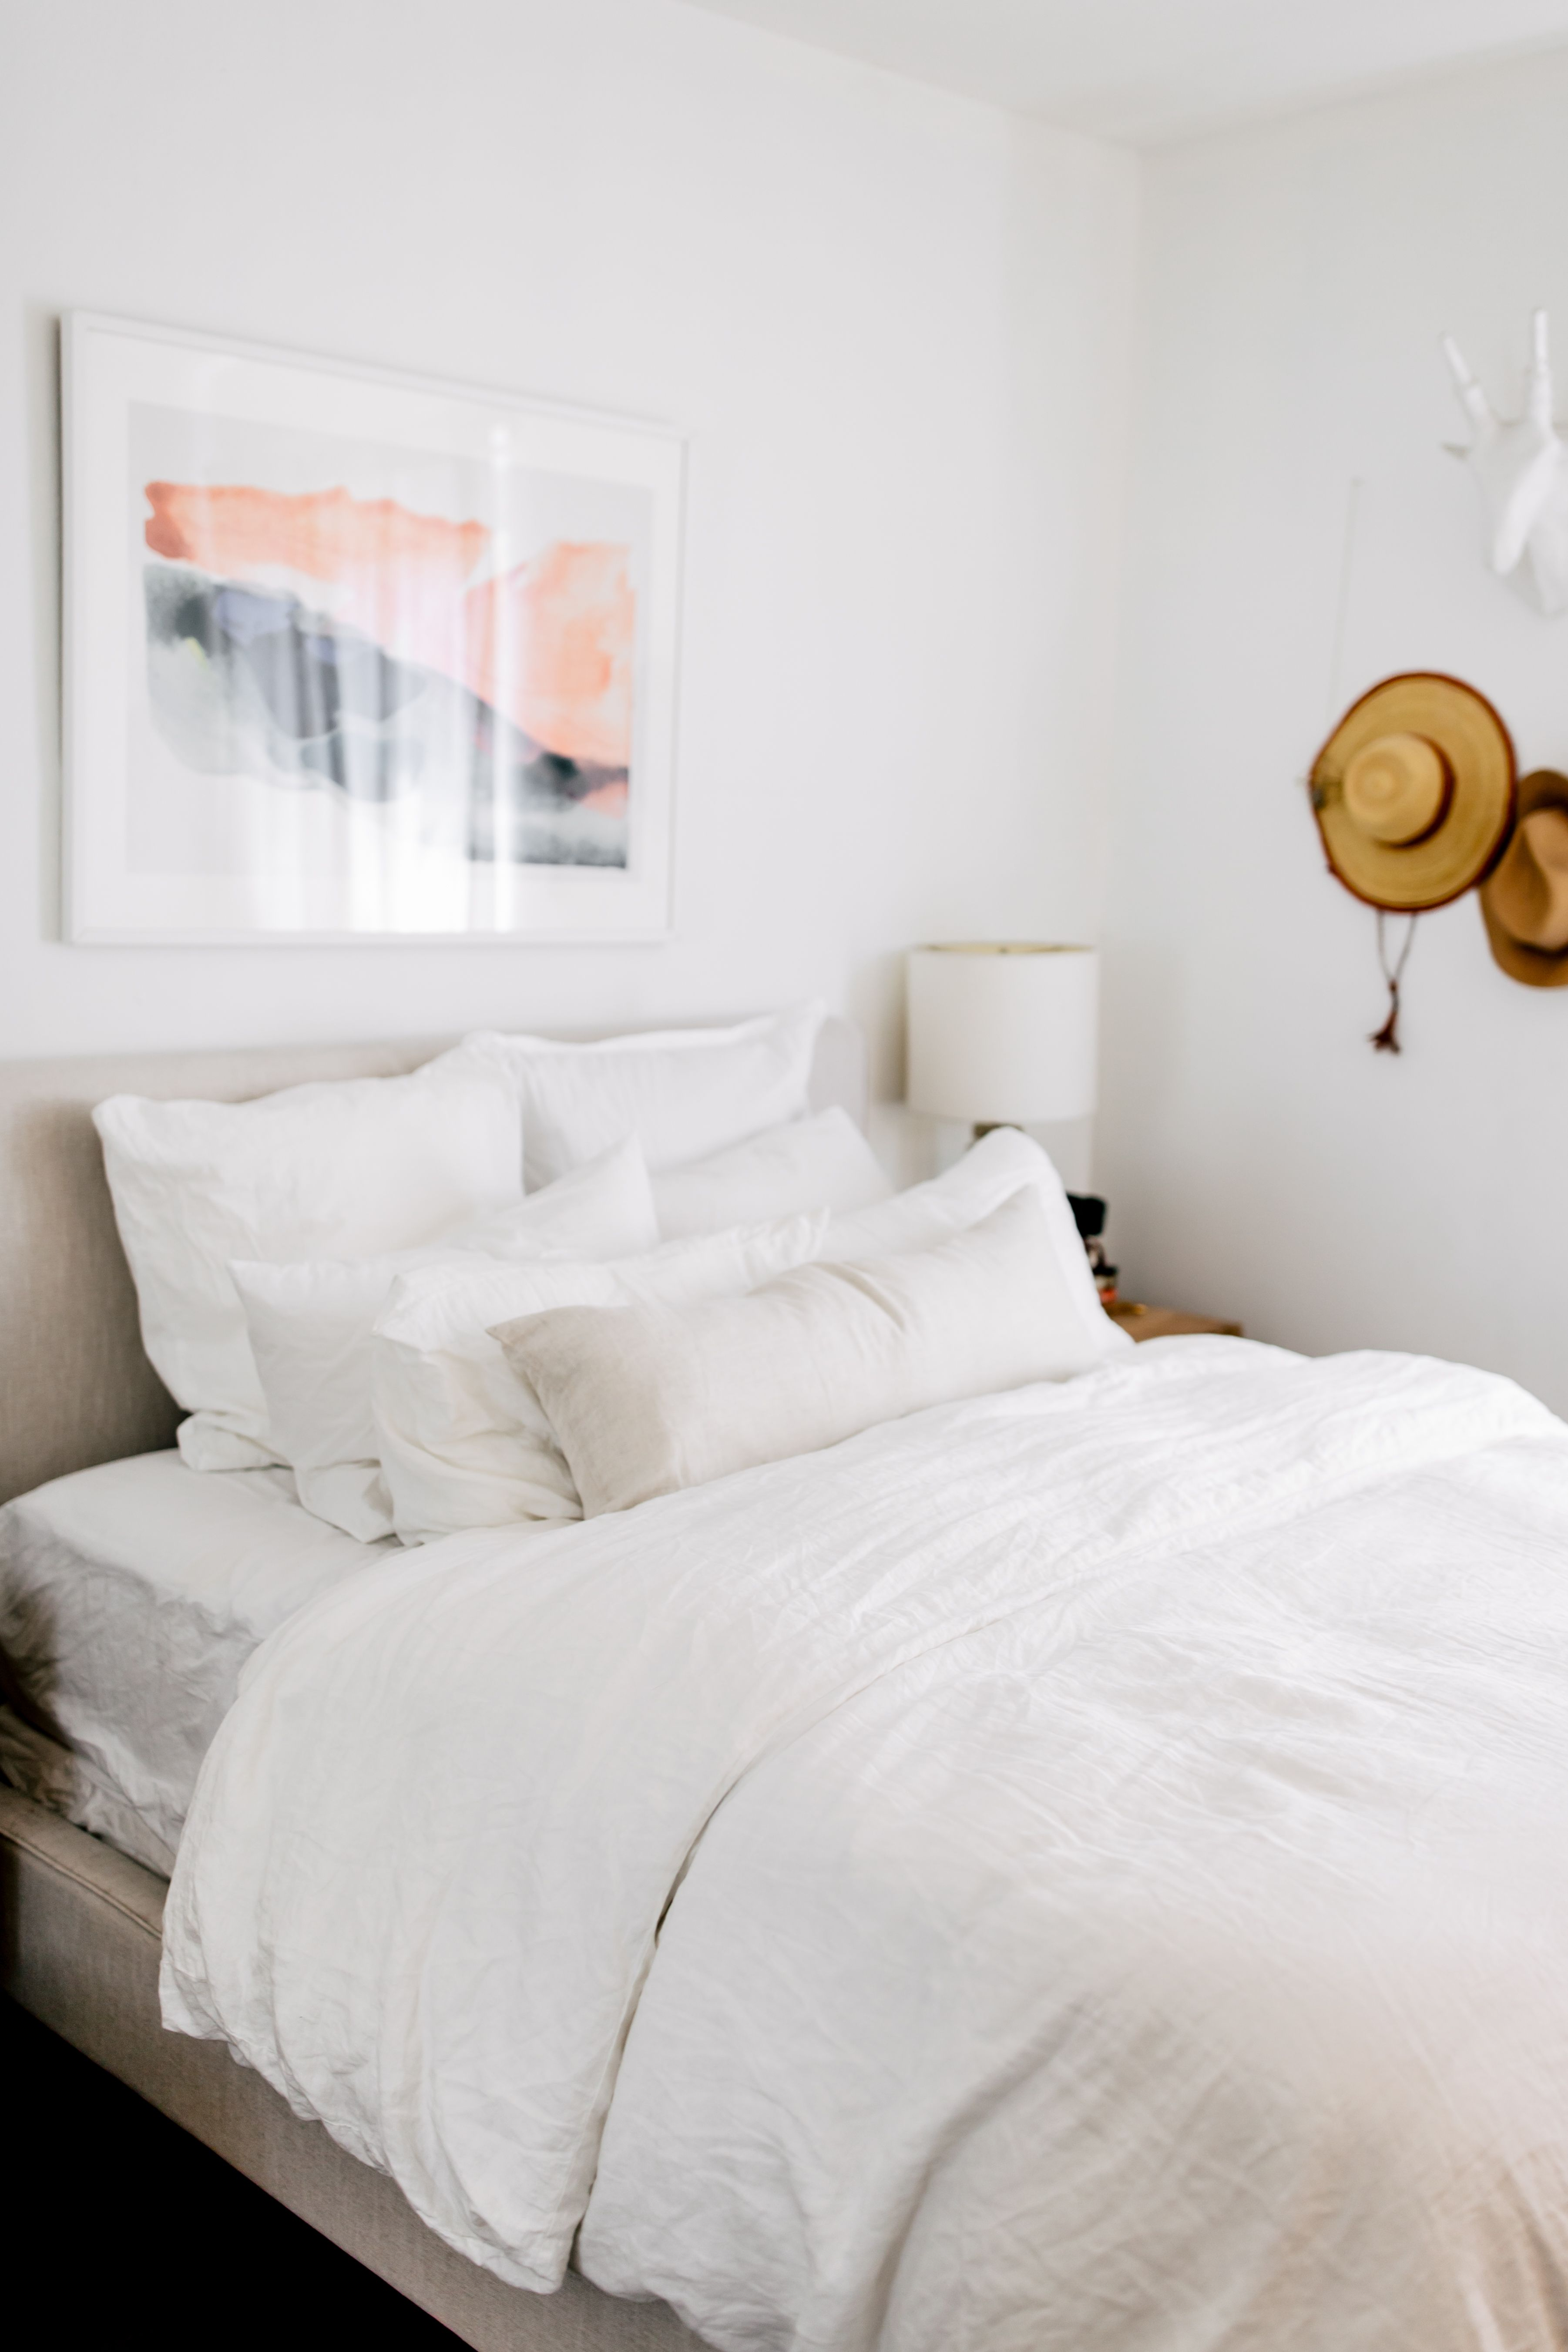 Embrace The Ultimate Calm With All White Soft Minimalist Linen Sheets Photo By Wesley Taylor For Parachute